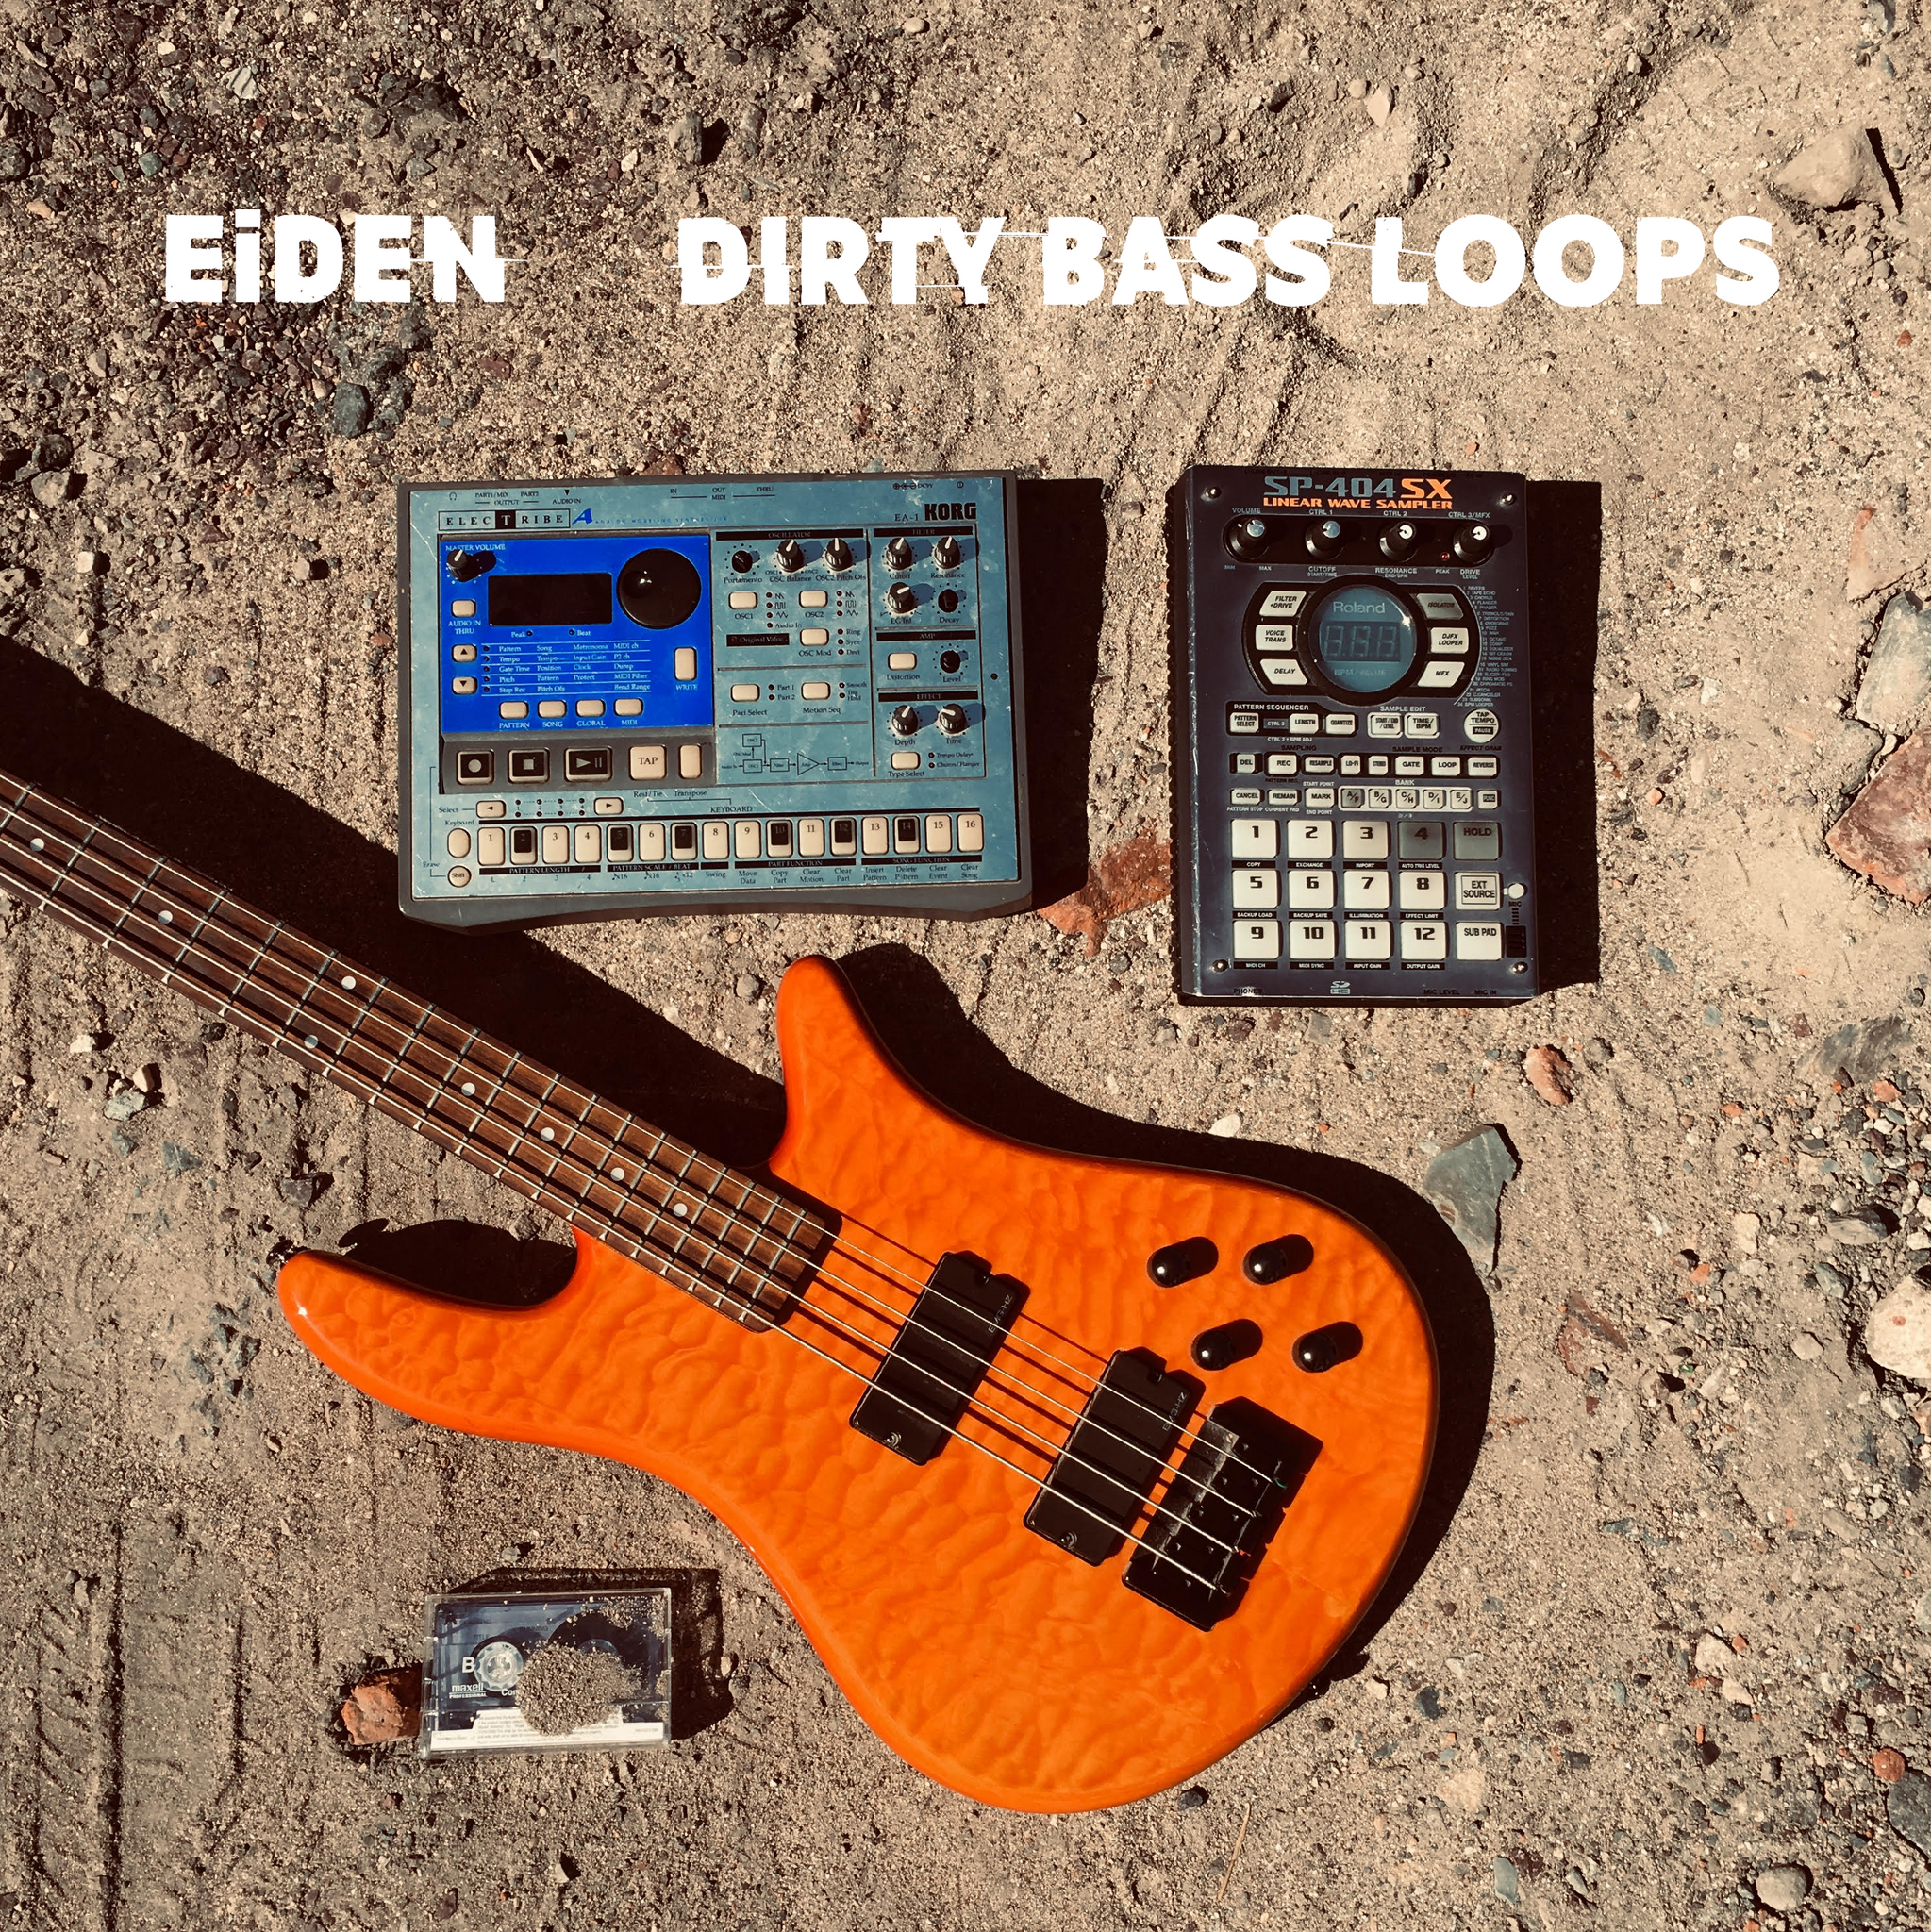 Dirty Bass Loops by EiDEN